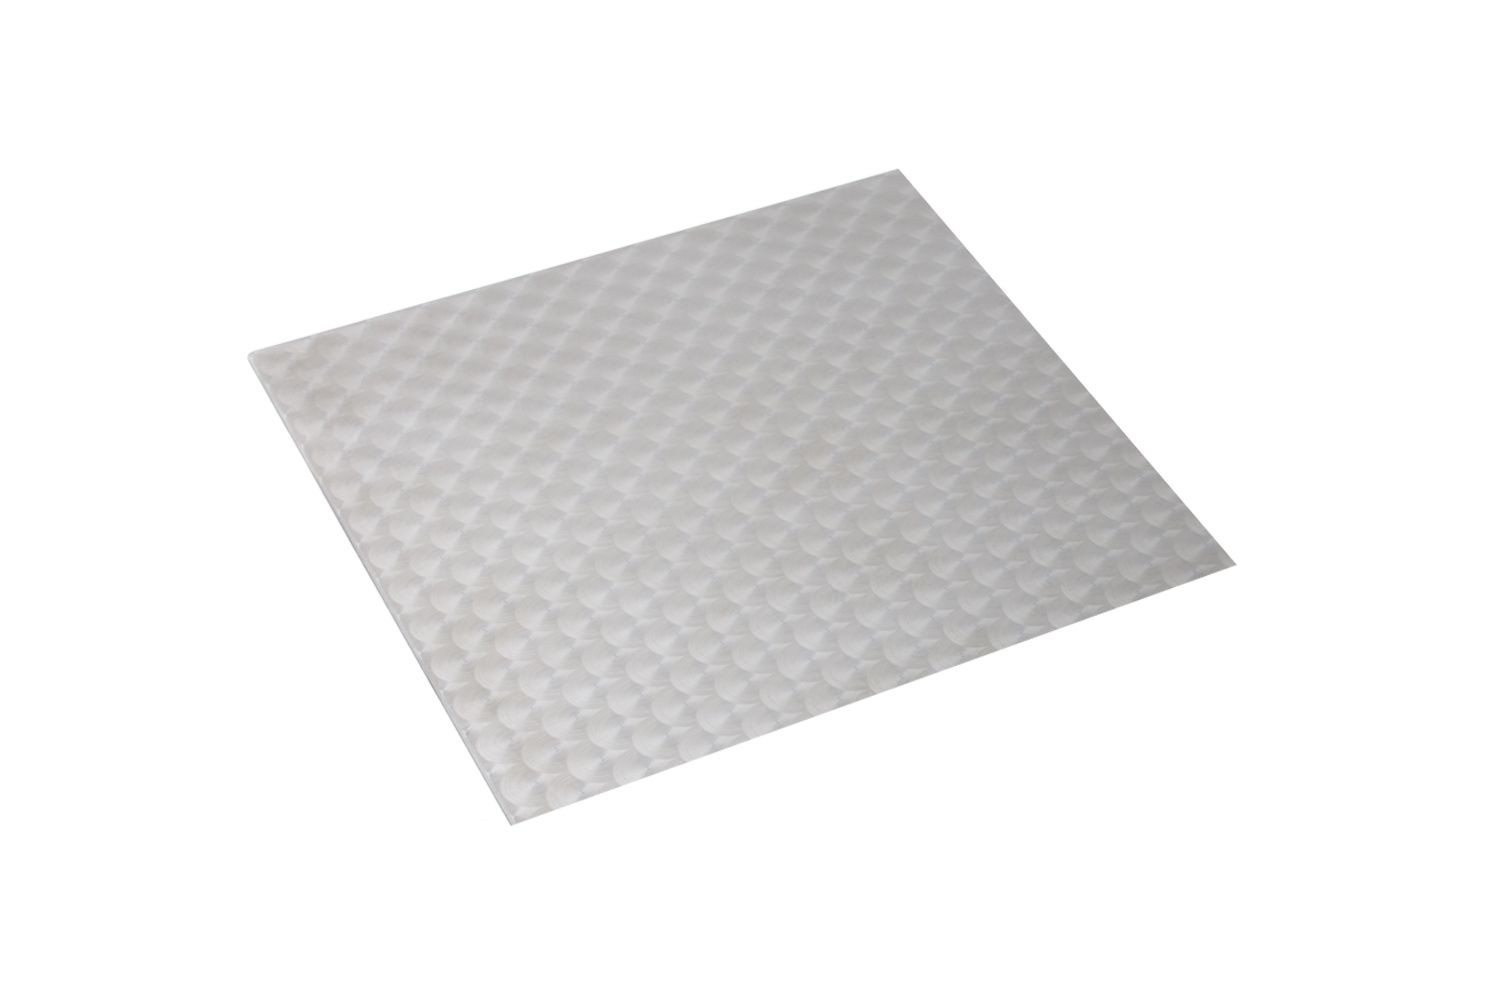 "Bon Chef 52110 EZ Fit Stainless Steel Half Size Tile with Circles, 12 3/4"" x 10 3/8"""